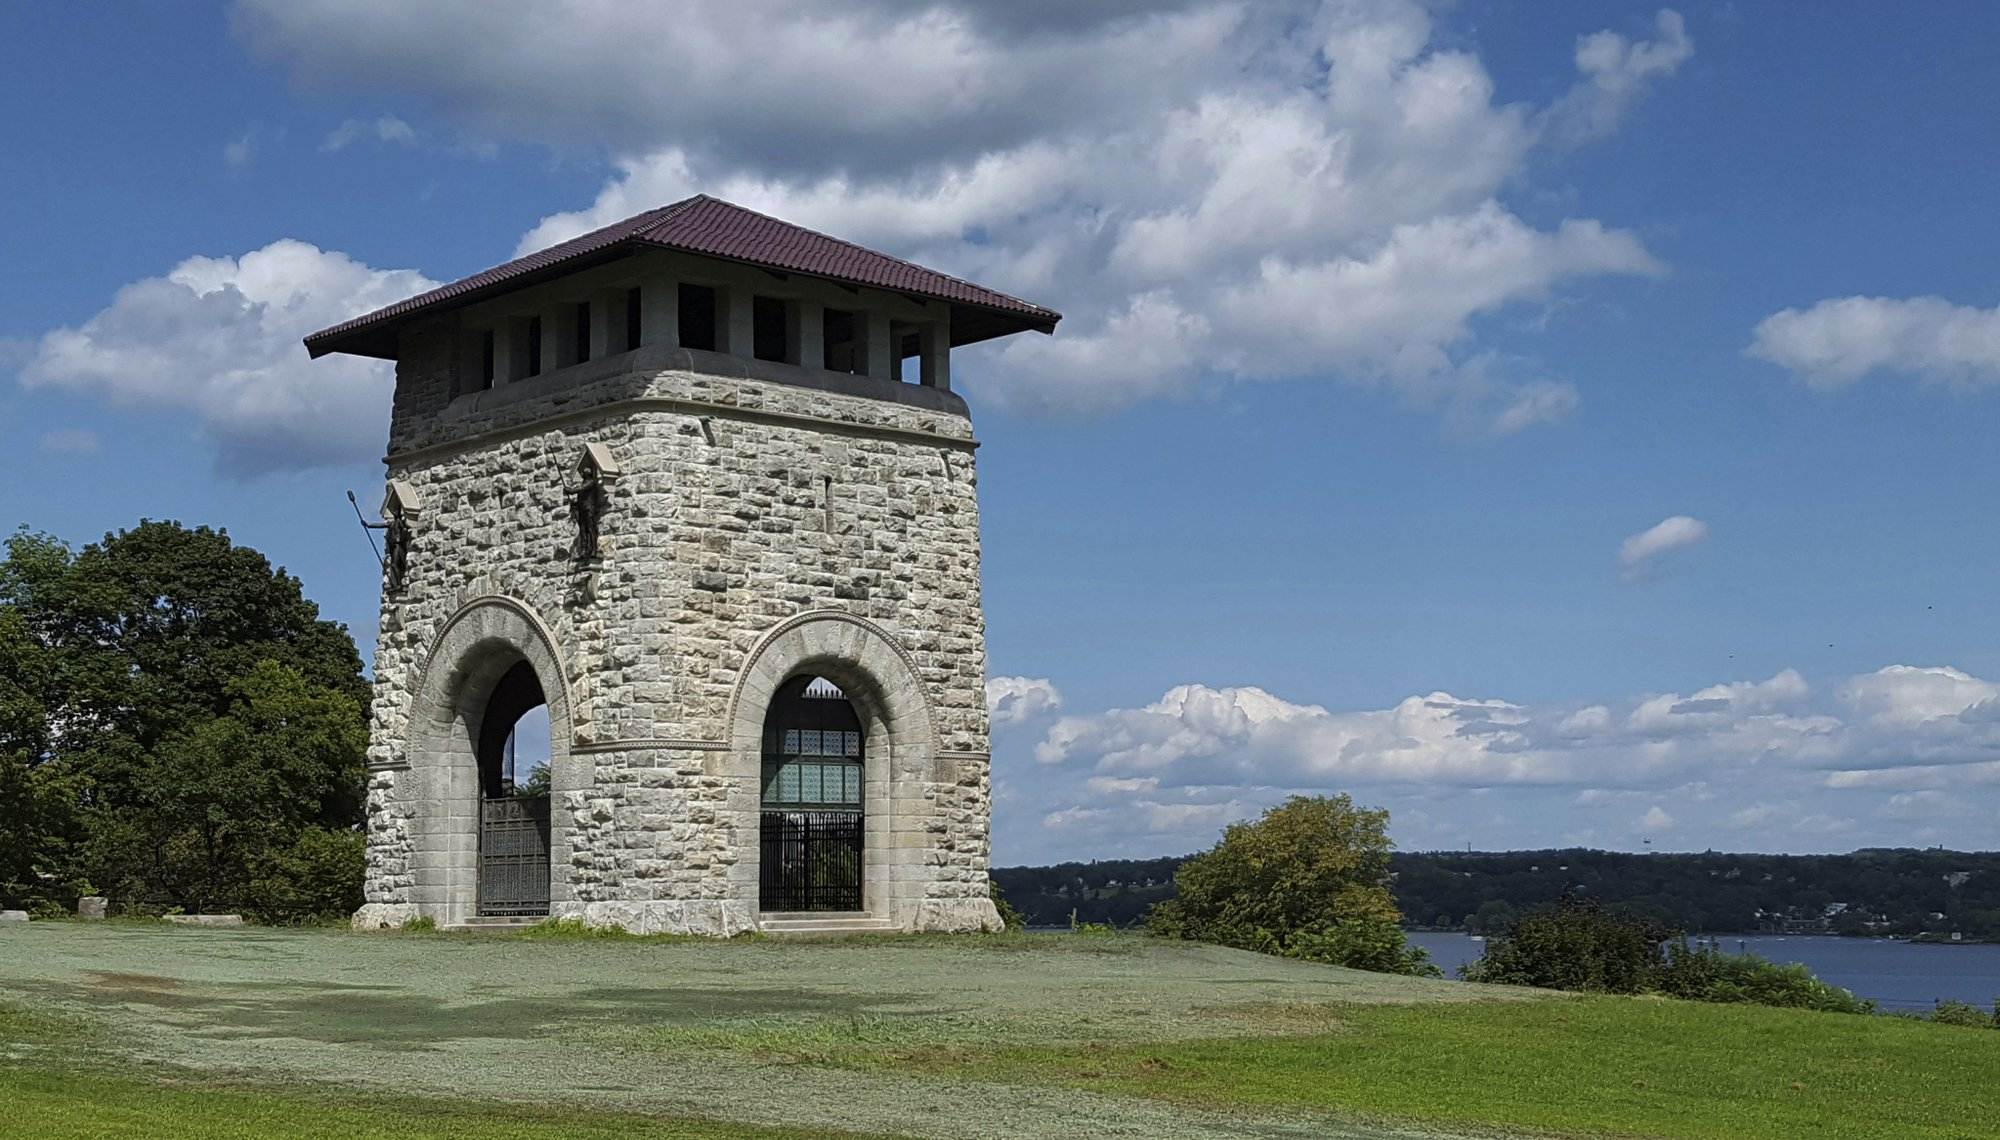 Aug. 23, 2018, photo provided by New York State Parks, Recreation & Historic Preservation shows the Tower of Victory in Newburgh, N.Y_1556279252066.jpeg.jpg